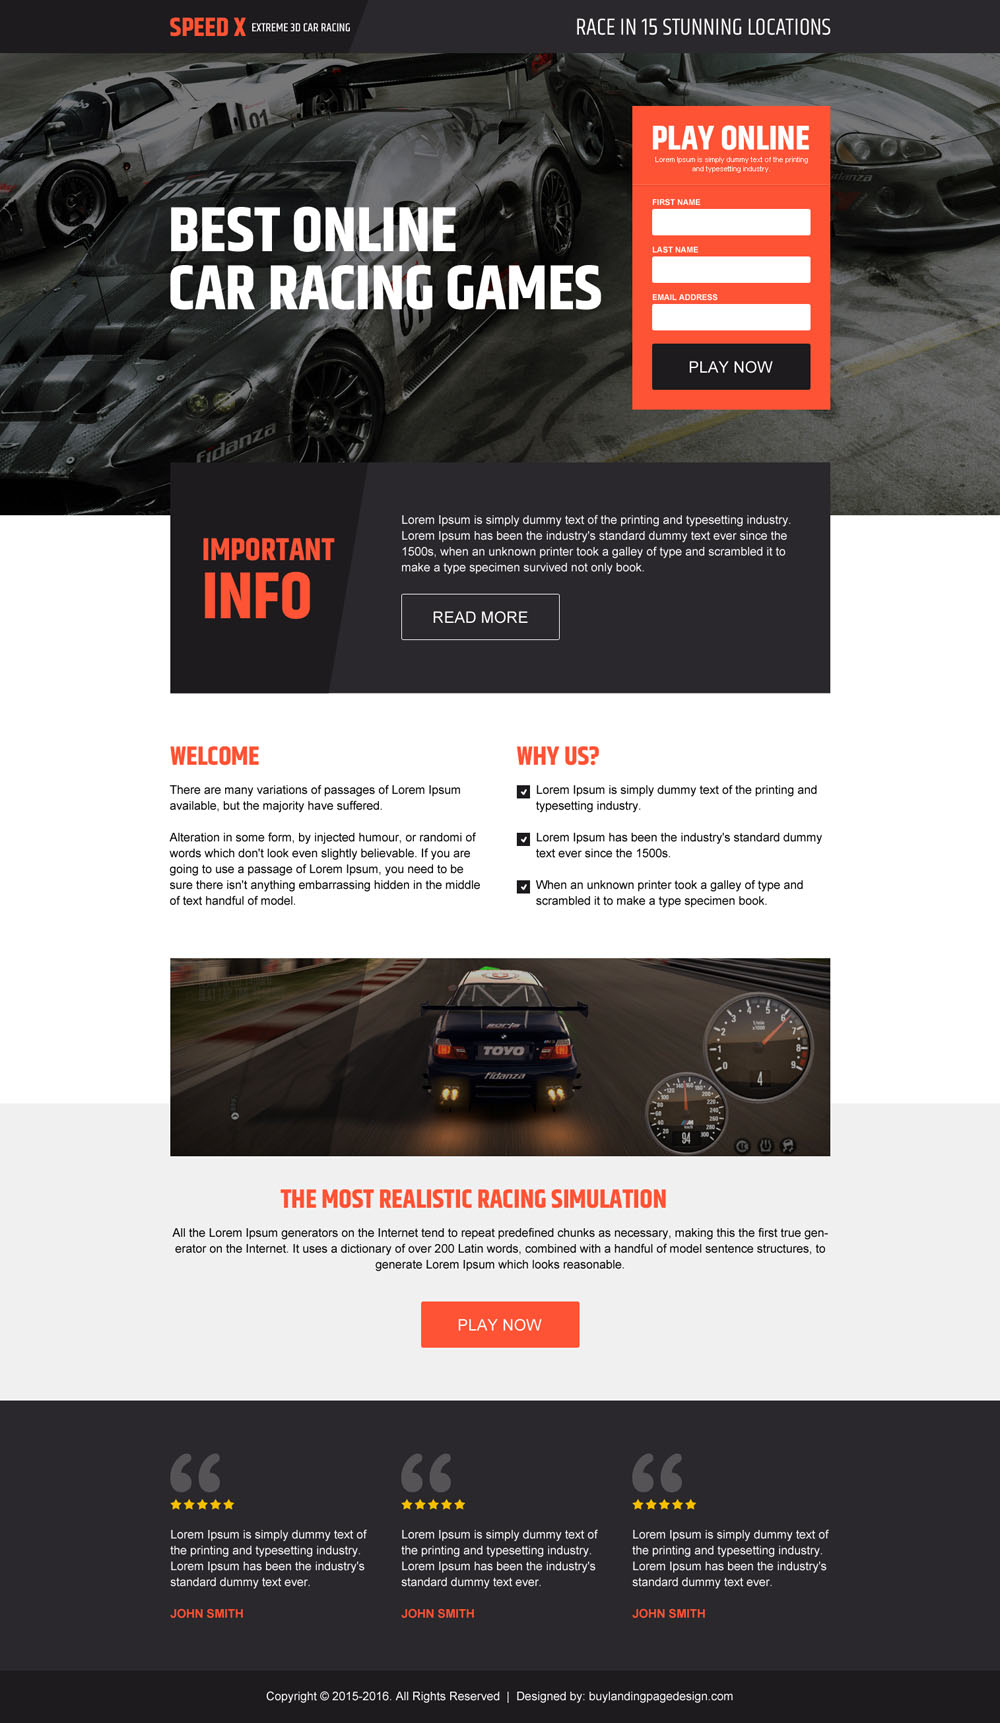 online-car-racing-games-lead-generation-converting-landing-page-design-001